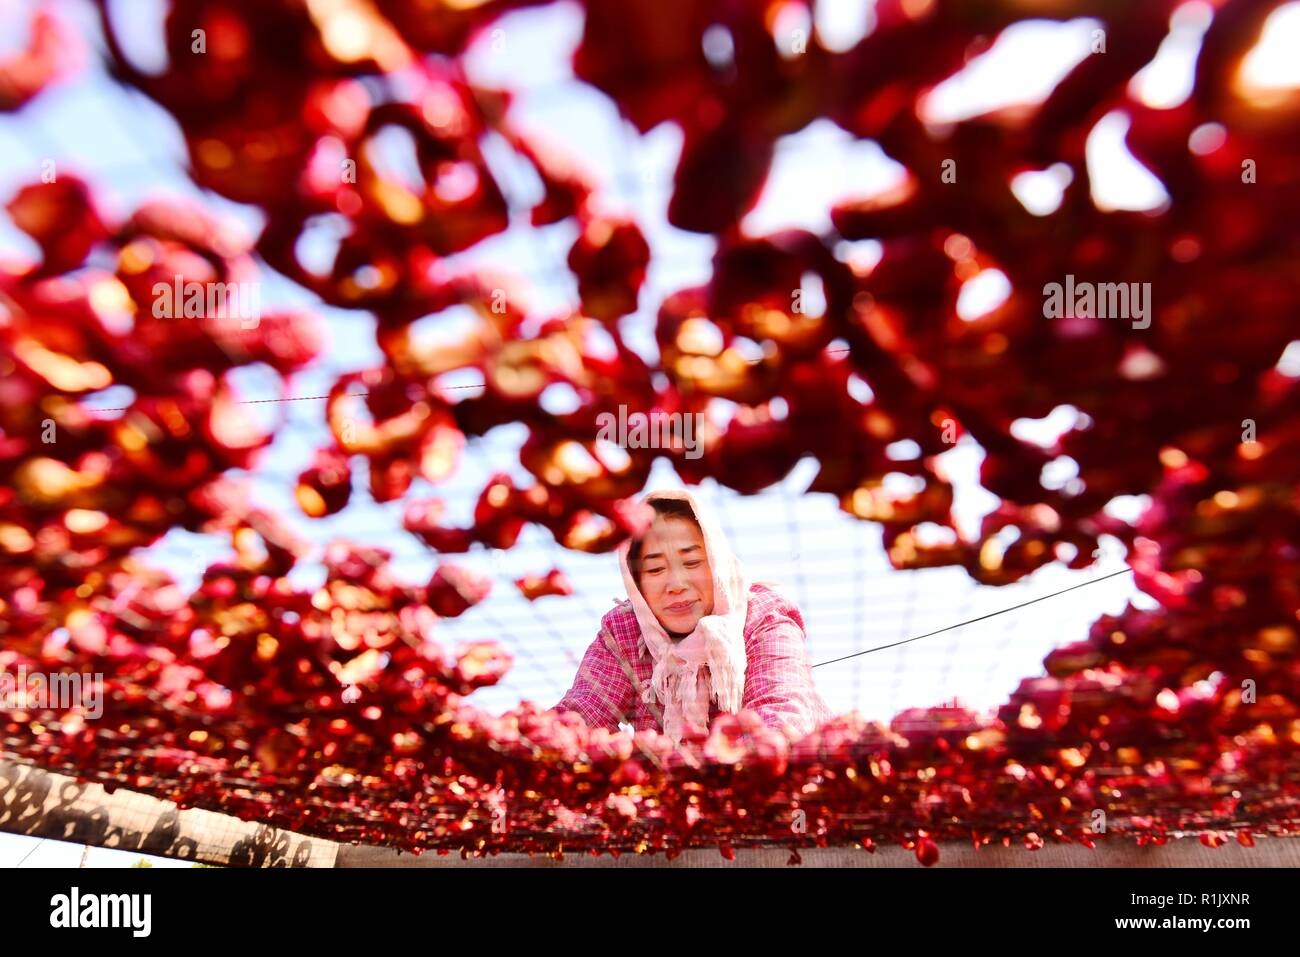 Weifang, Weifang, China. 13th Nov, 2018. Weifang, CHINA-Peasants are busy with making and processing dried hawthorn slices in Weifang, east China's Shandong Province. Credit: SIPA Asia/ZUMA Wire/Alamy Live News - Stock Image